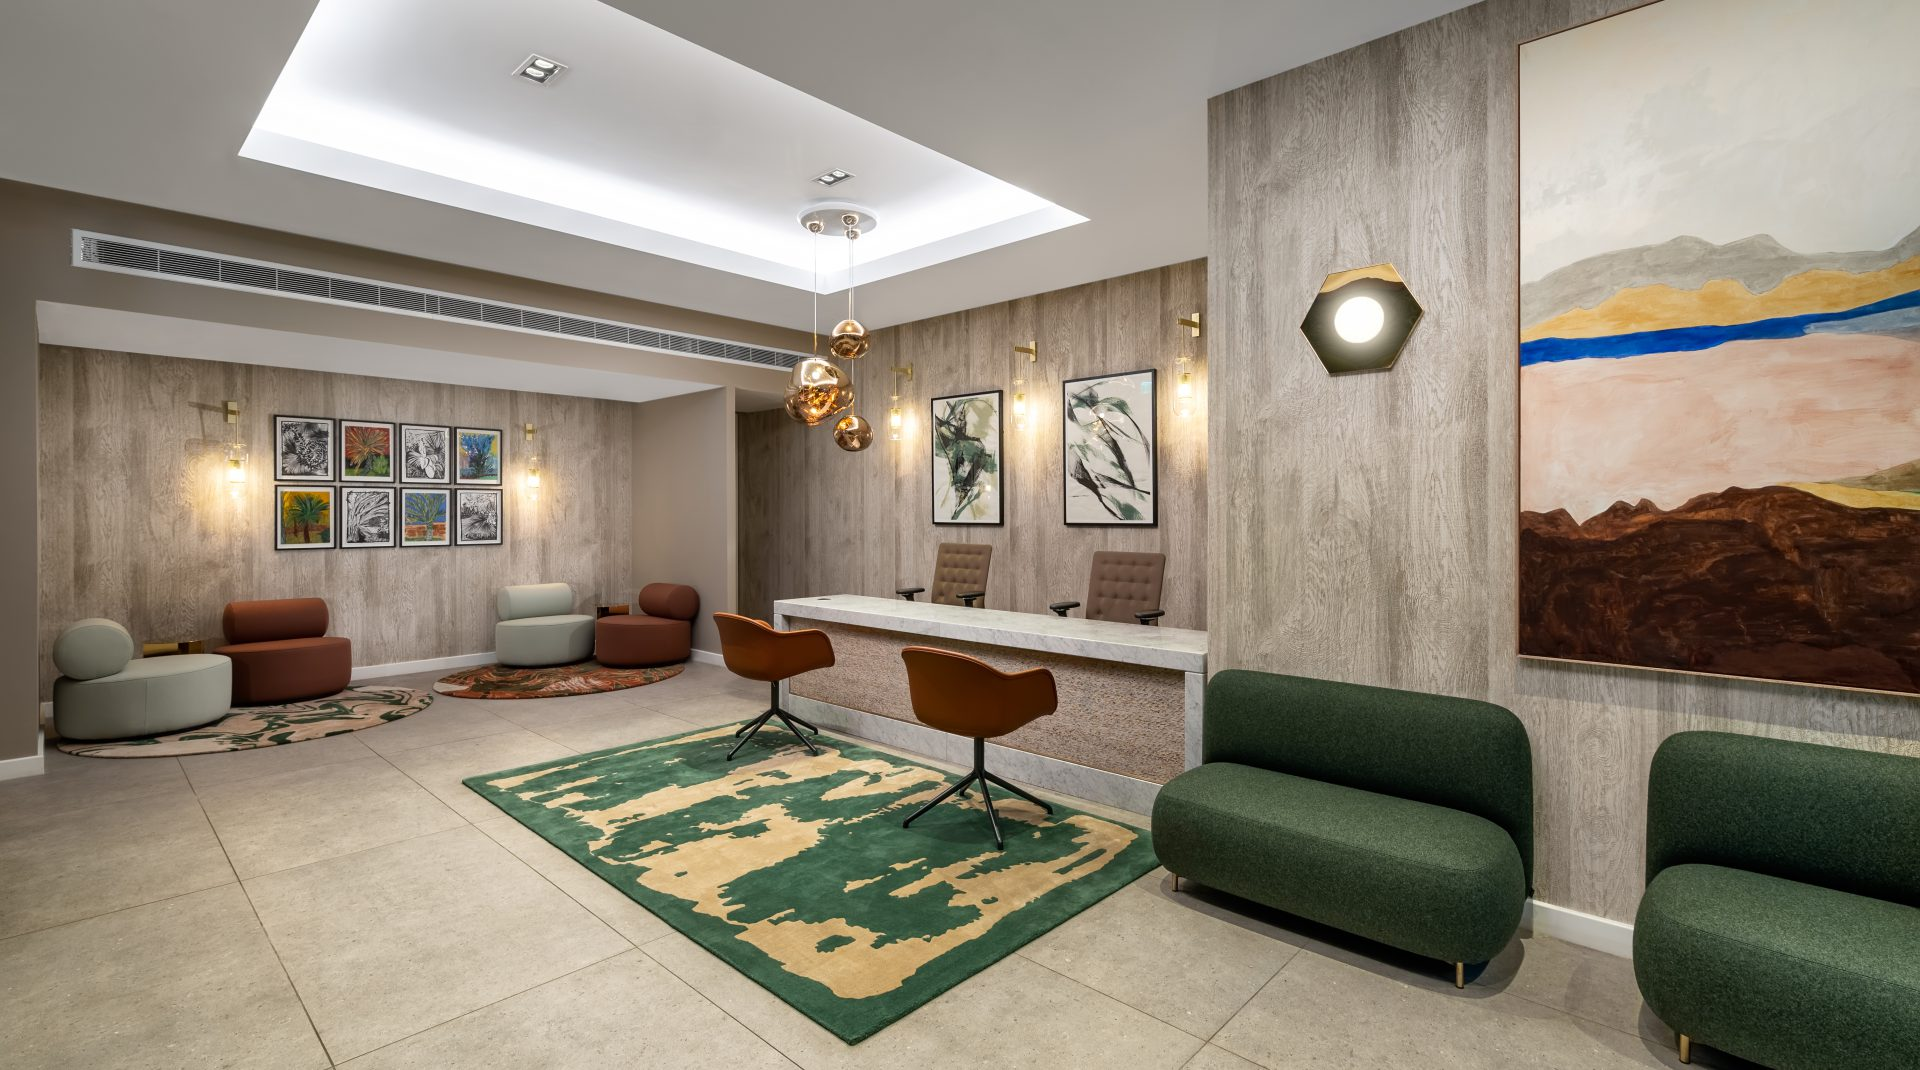 https://thelincolnsuites.com/wp-content/uploads/2021/08/1.-The-Lincoln-Suites-Lobby-1920x1070.jpg